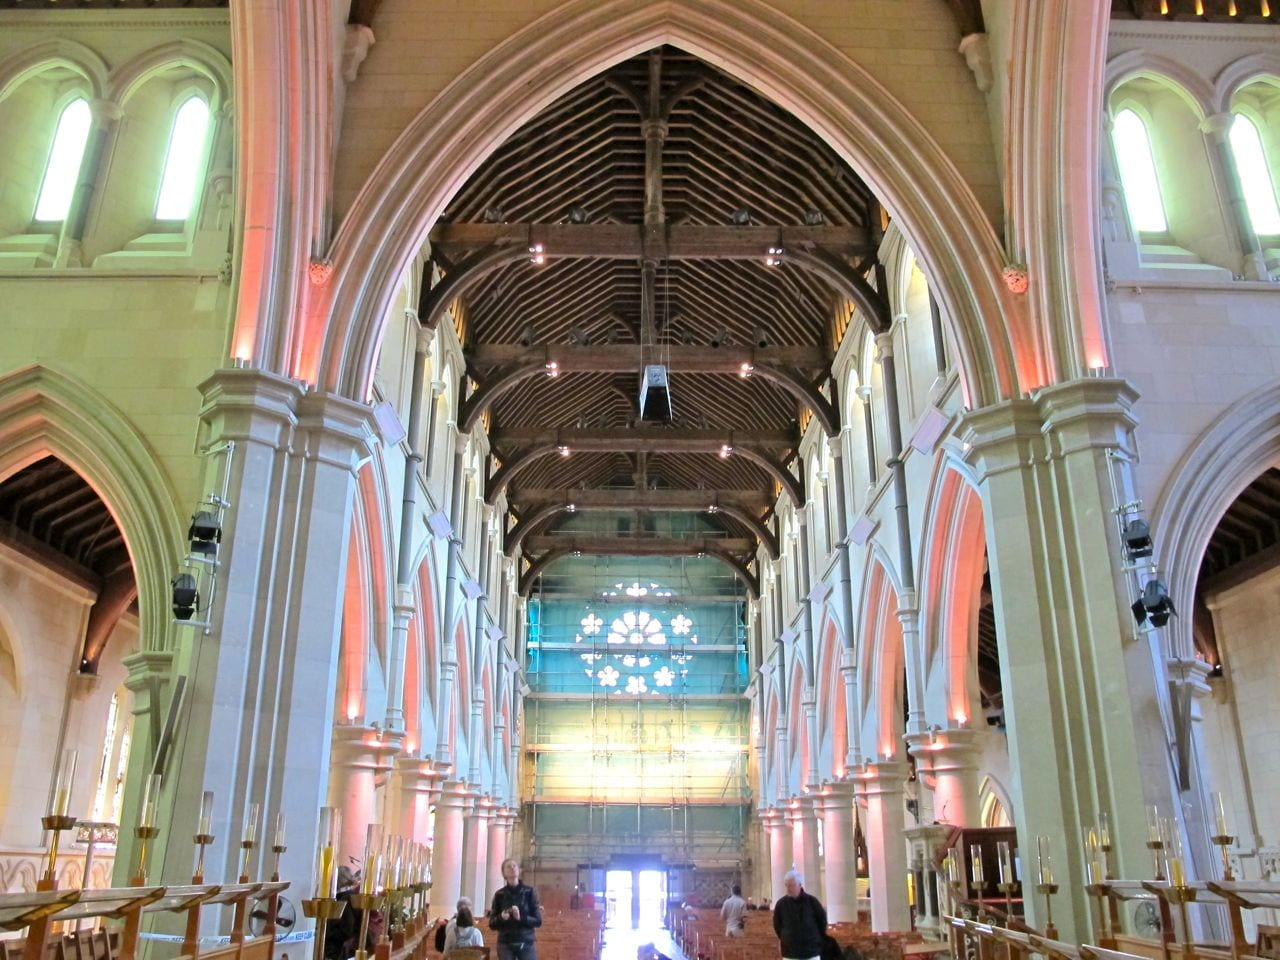 The interior of beloved Christchurch Cathedral, January 2011